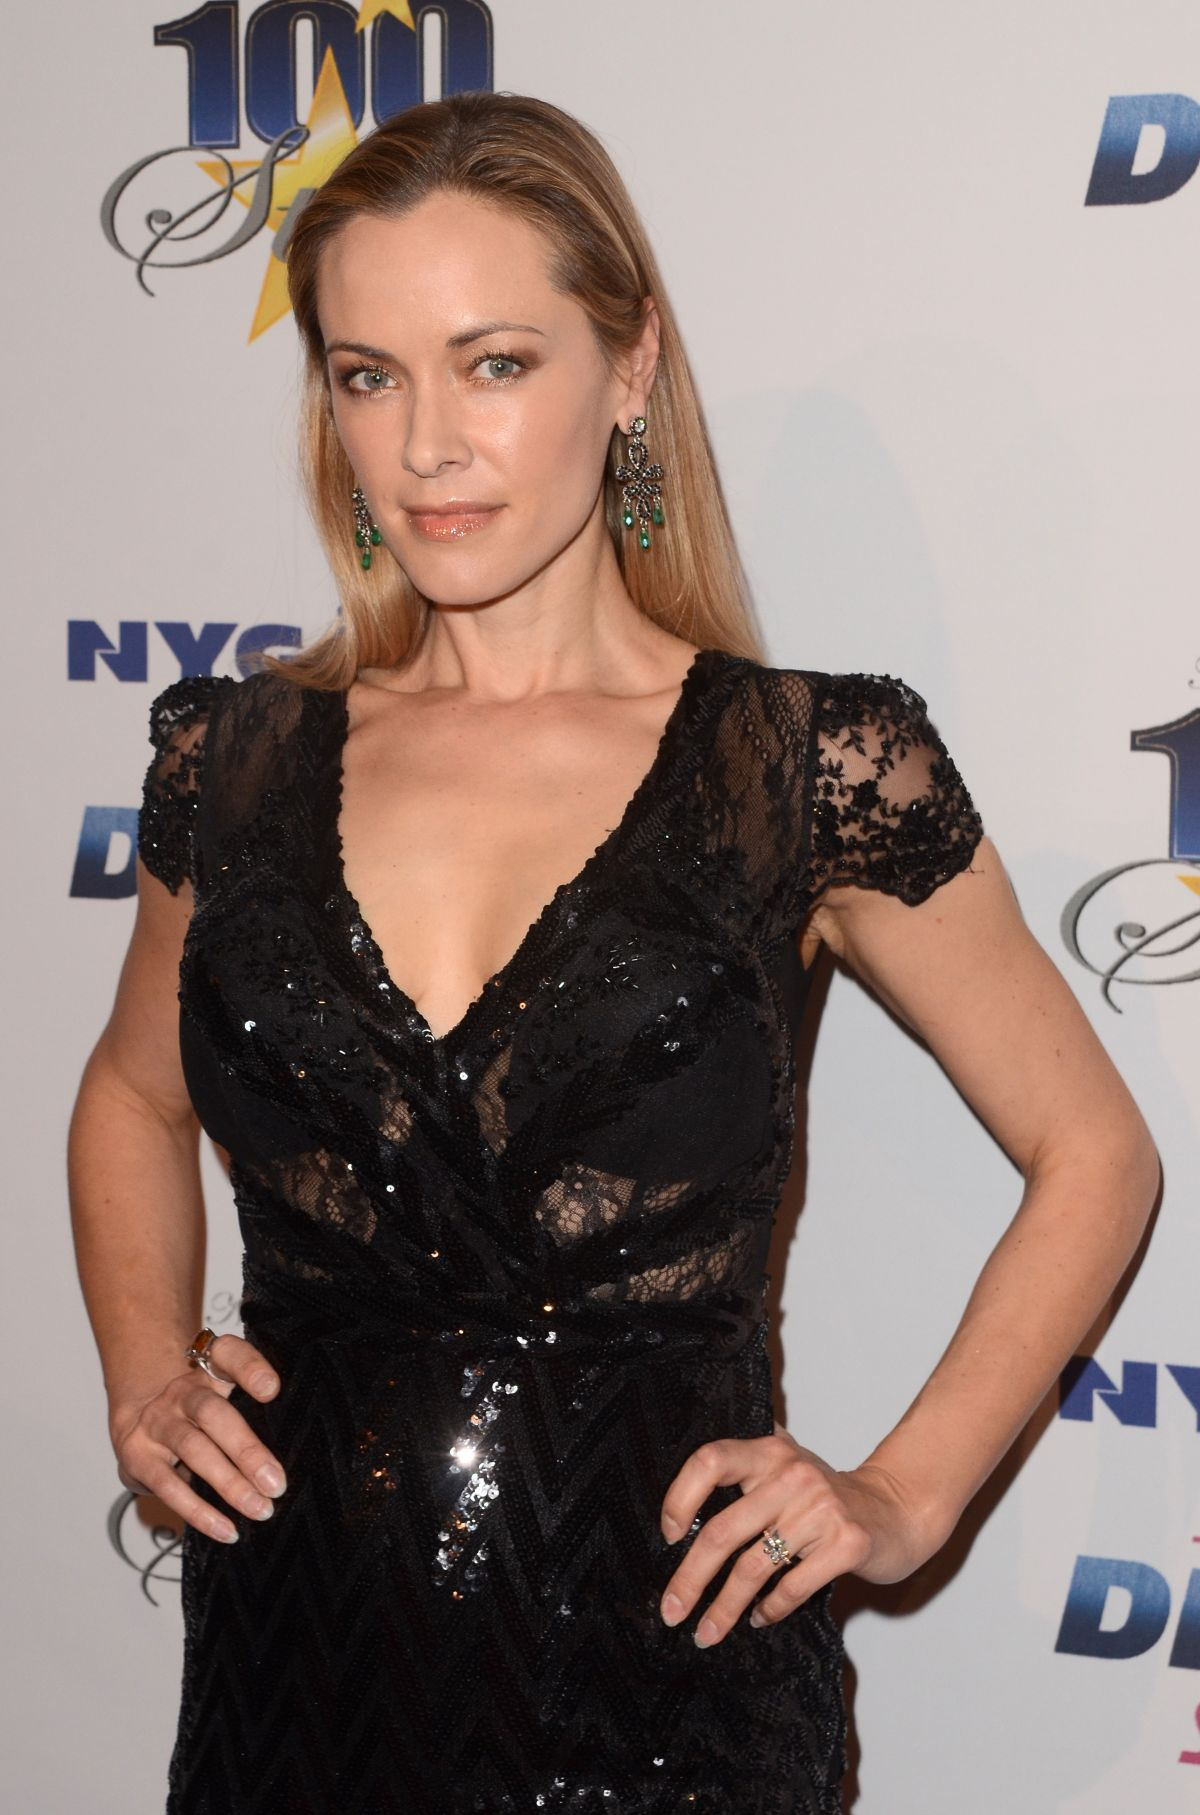 KRISTANNA LOKEN at 27th Annual Night of 100 Stars Oscars Viewing Party 02/26/2017